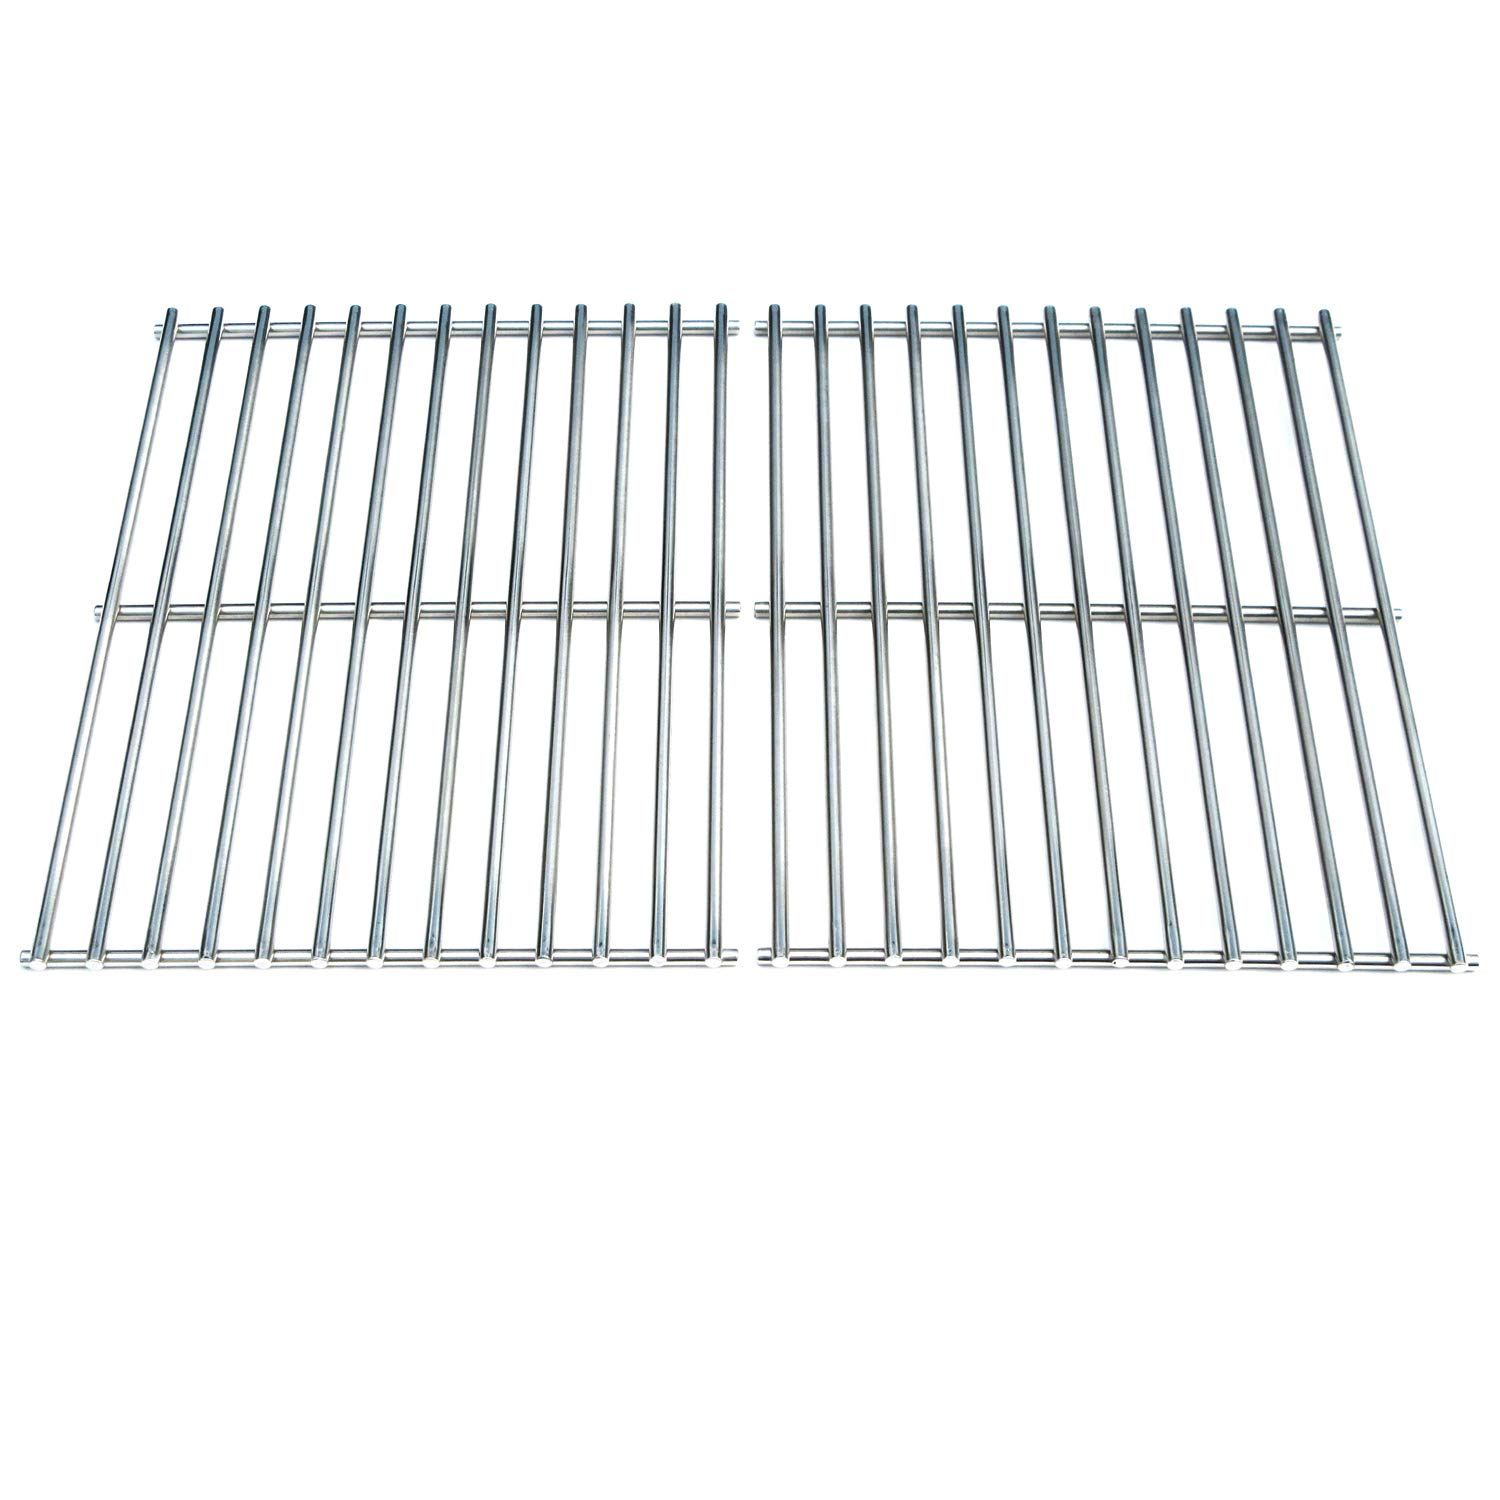 Direct Store Parts DS112 Solid Stainless Steel Cooking grids Replacement Weber BBQ Stainless Steel Cooking Grill Grid Grate 7521 7523 9855 (Aftermarket Parts)